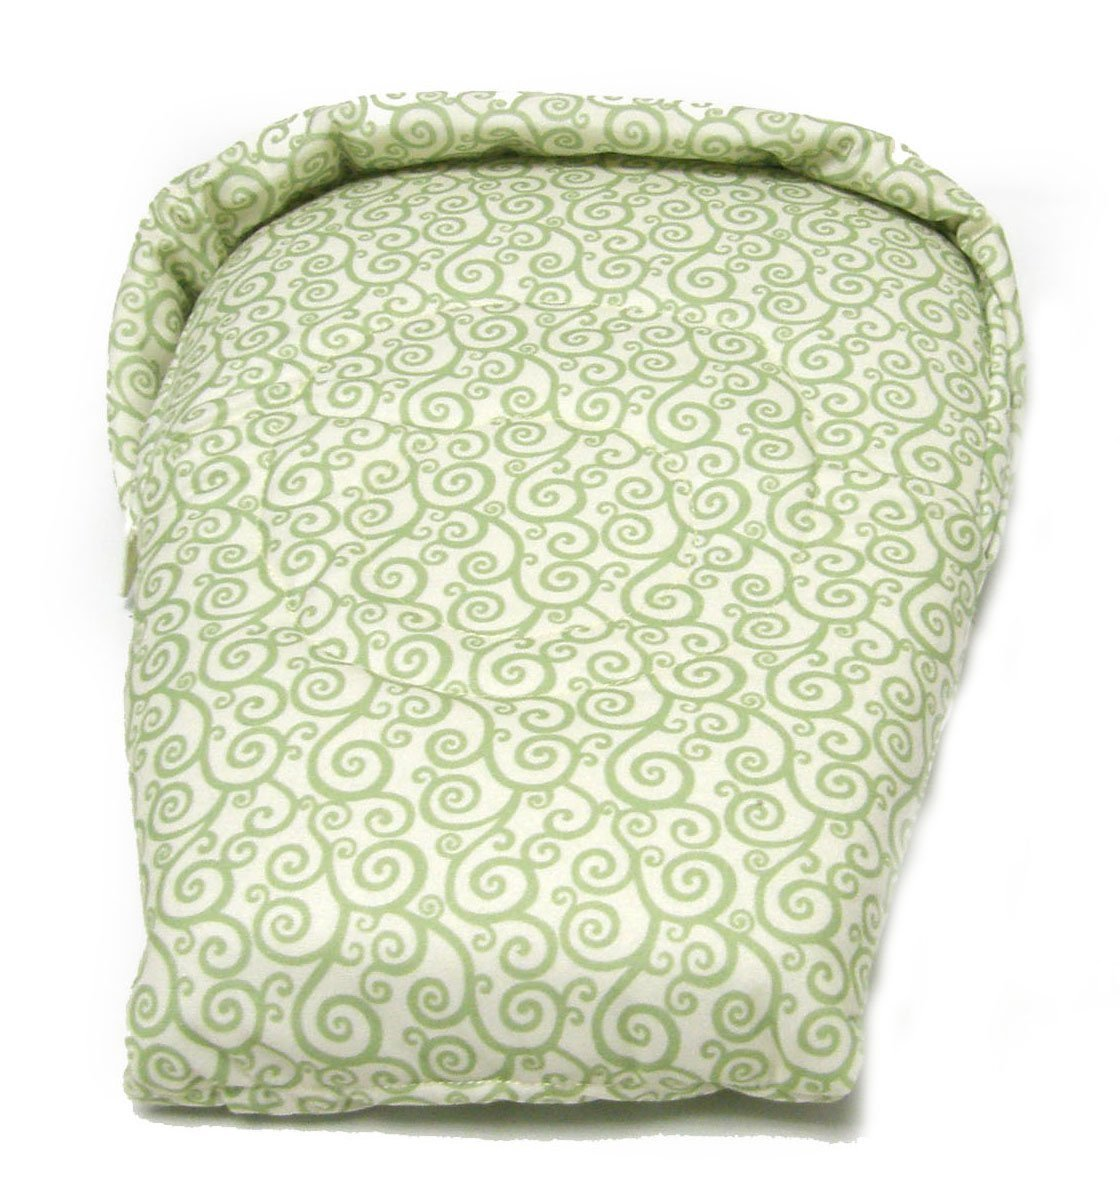 Colic Relief Pad Learning Curve Y4479A1